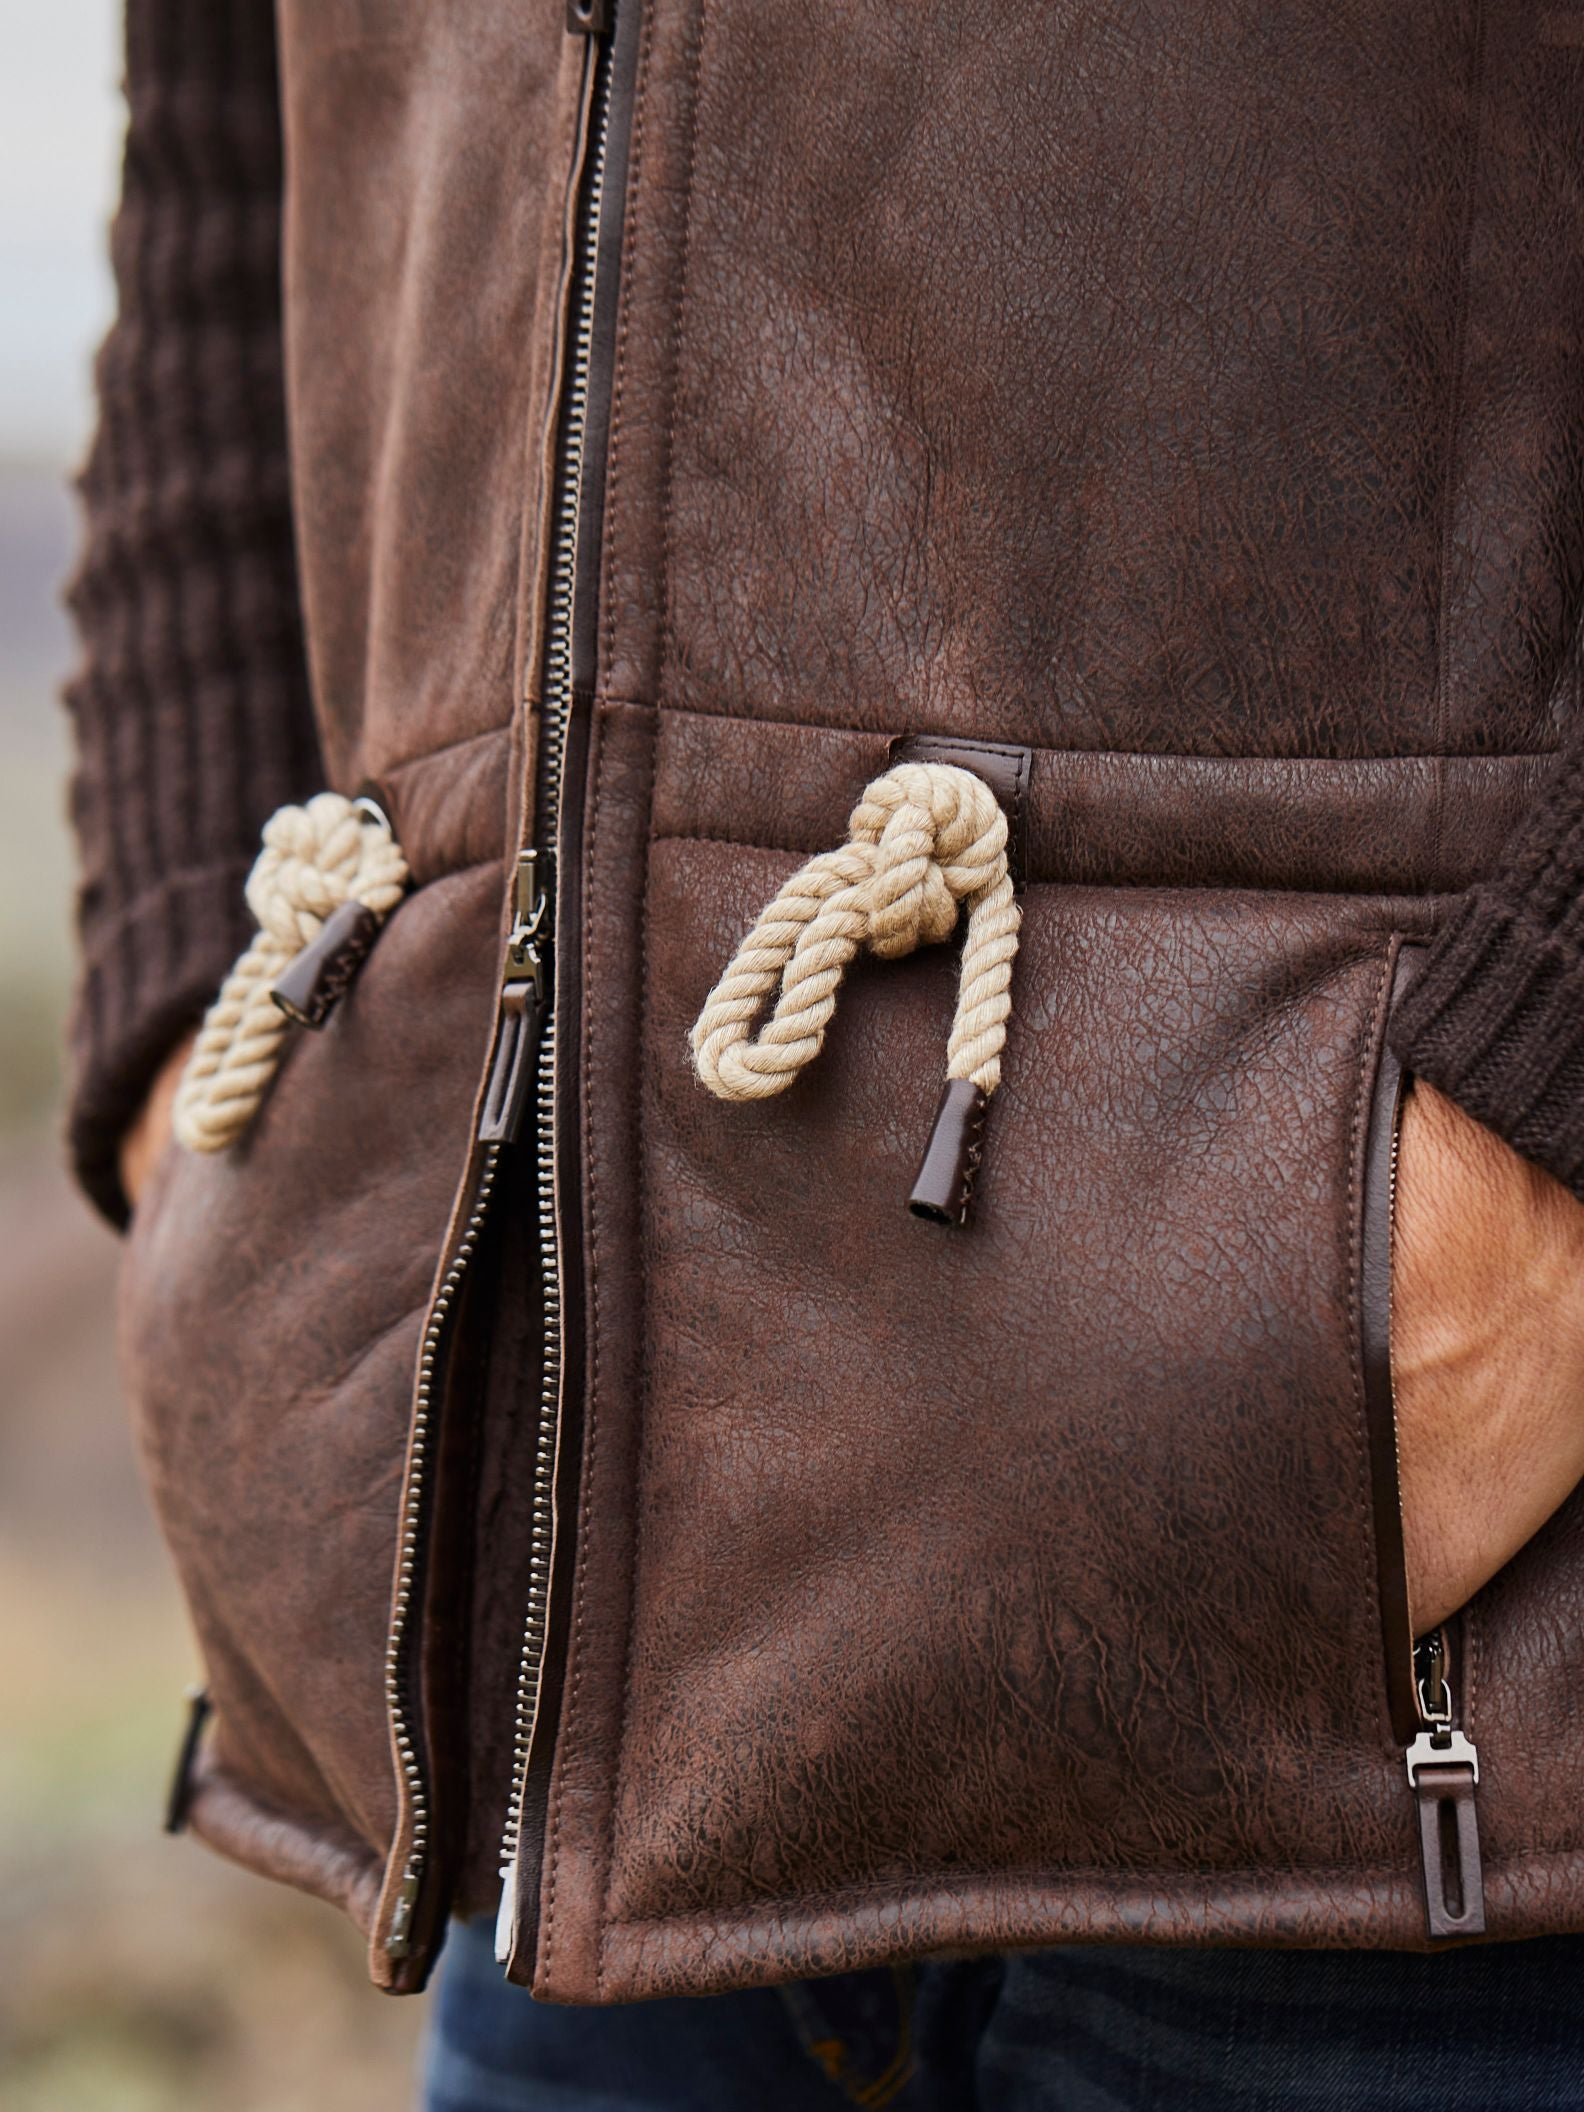 Nautical knots complete the antiqued rope pulls